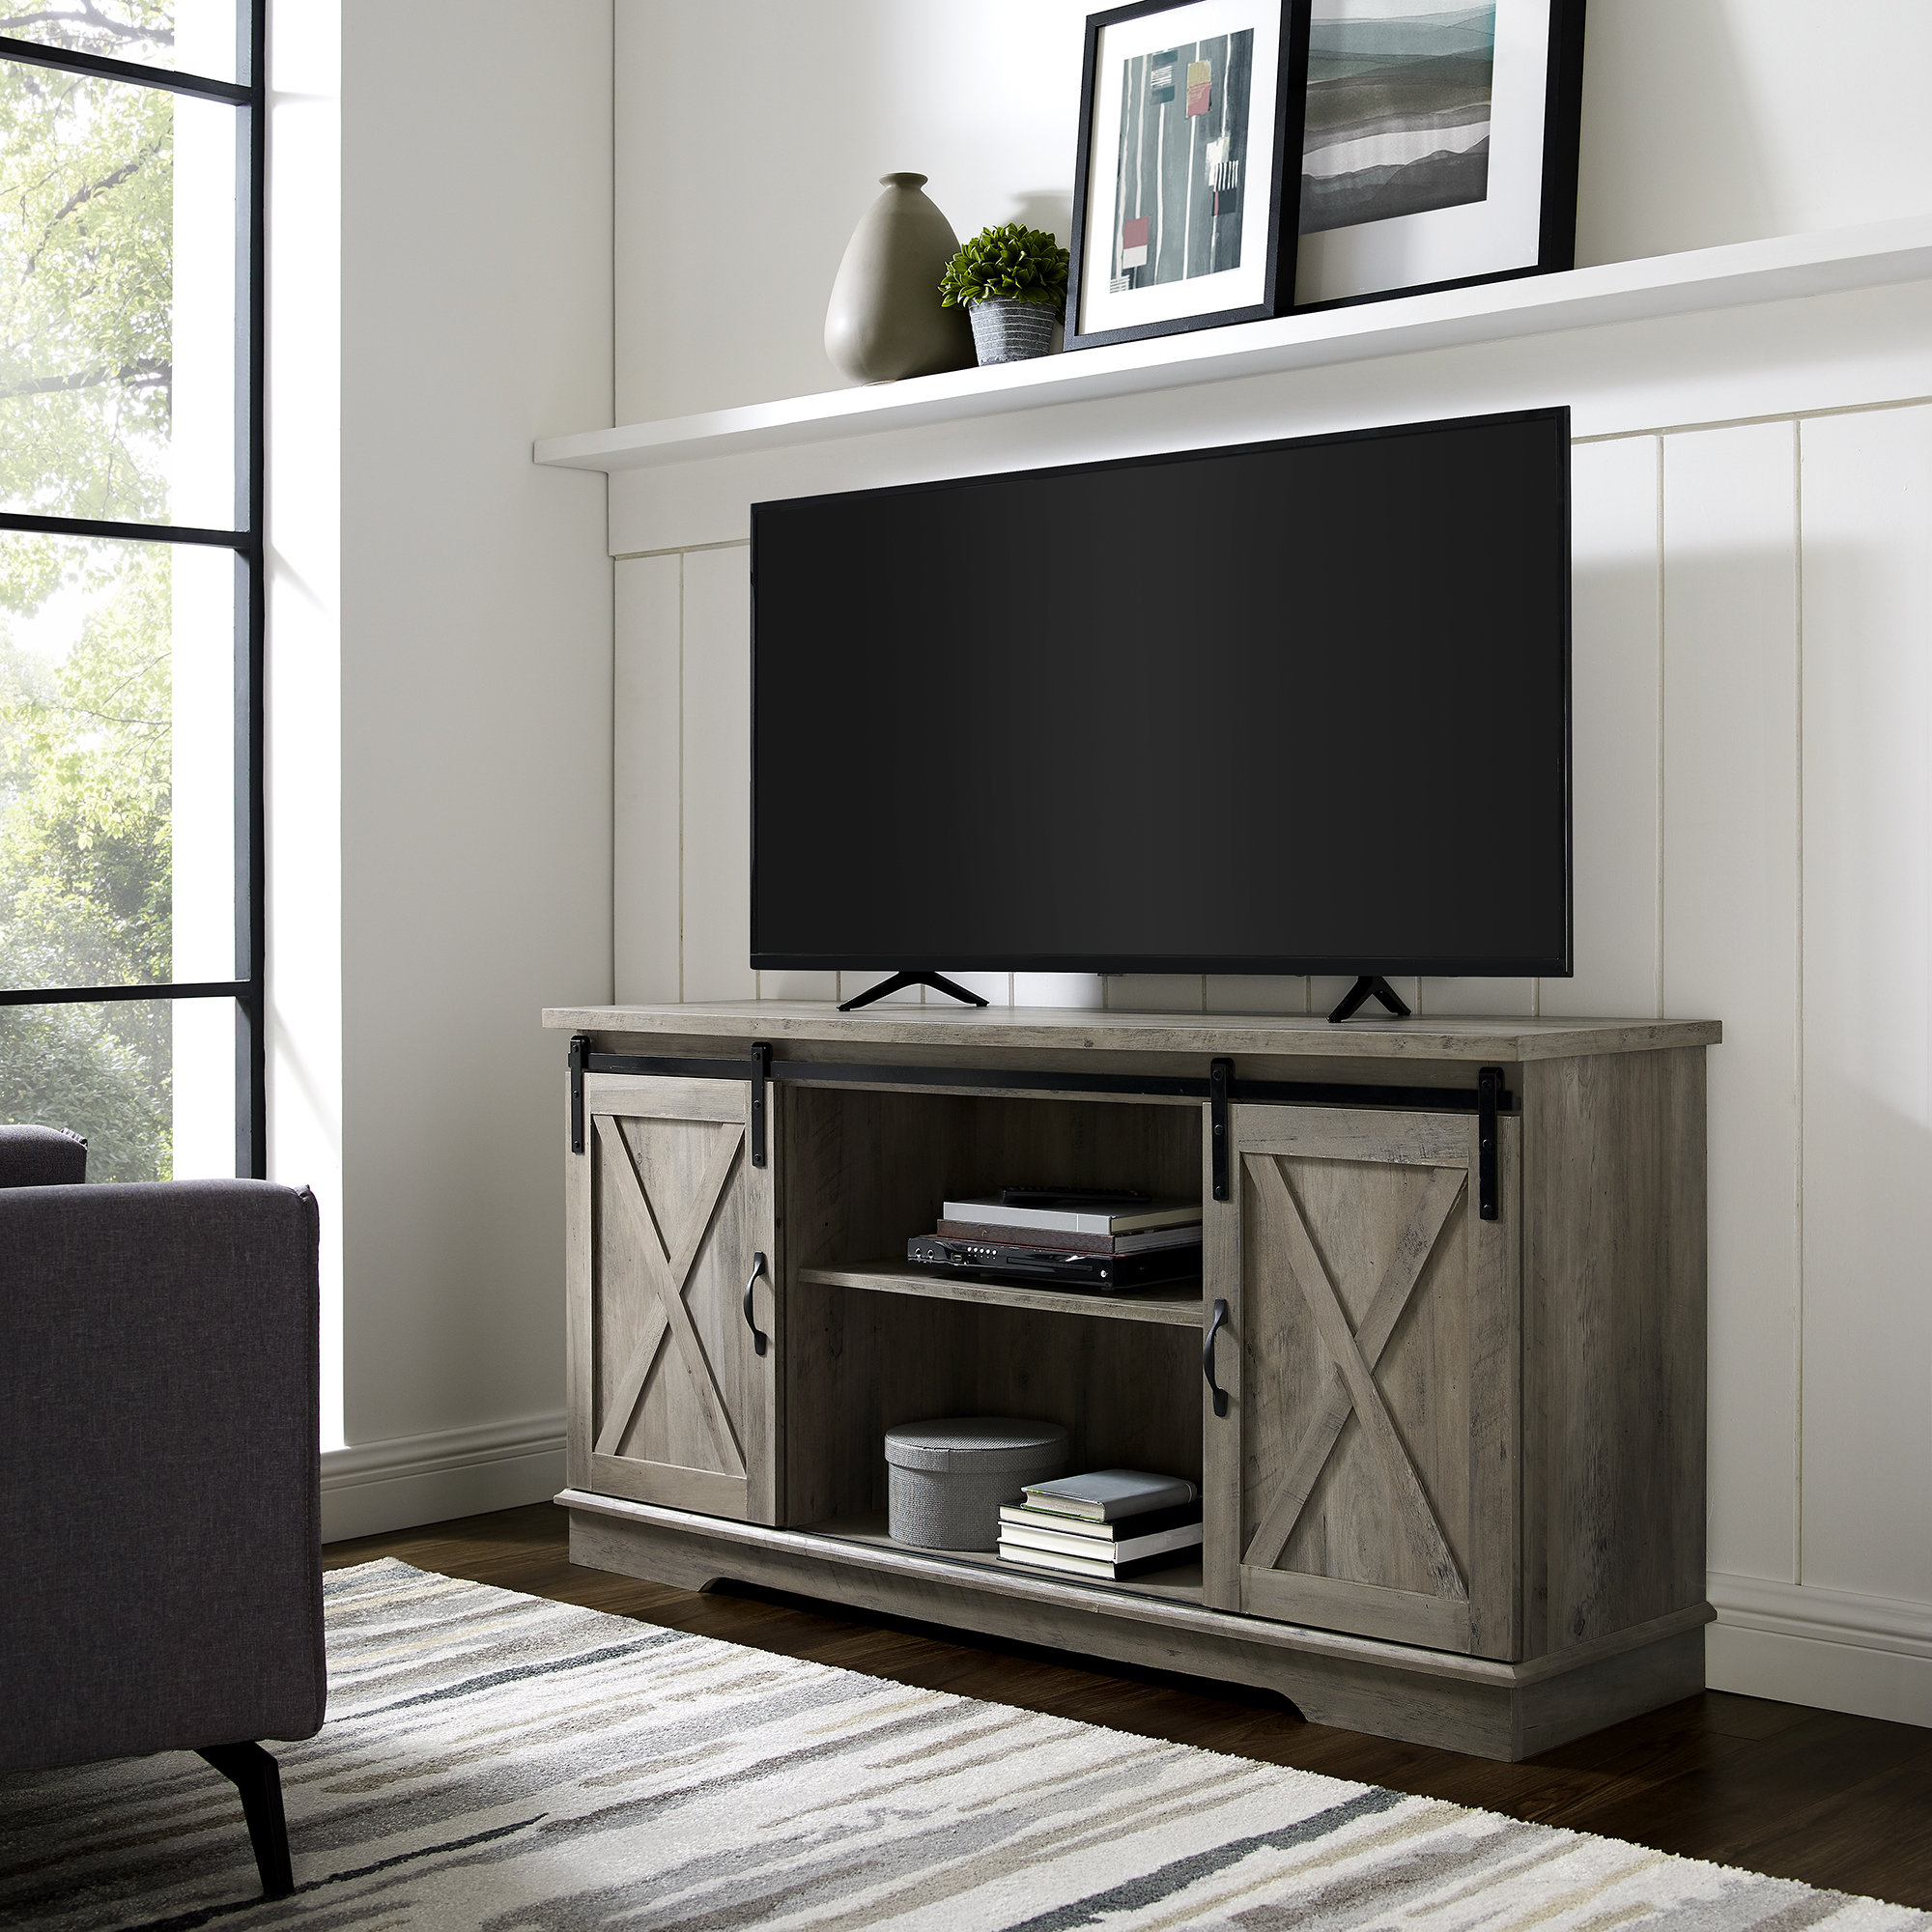 Most Recent Tv Stands & Entertainment Centers You'll Love (View 6 of 20)